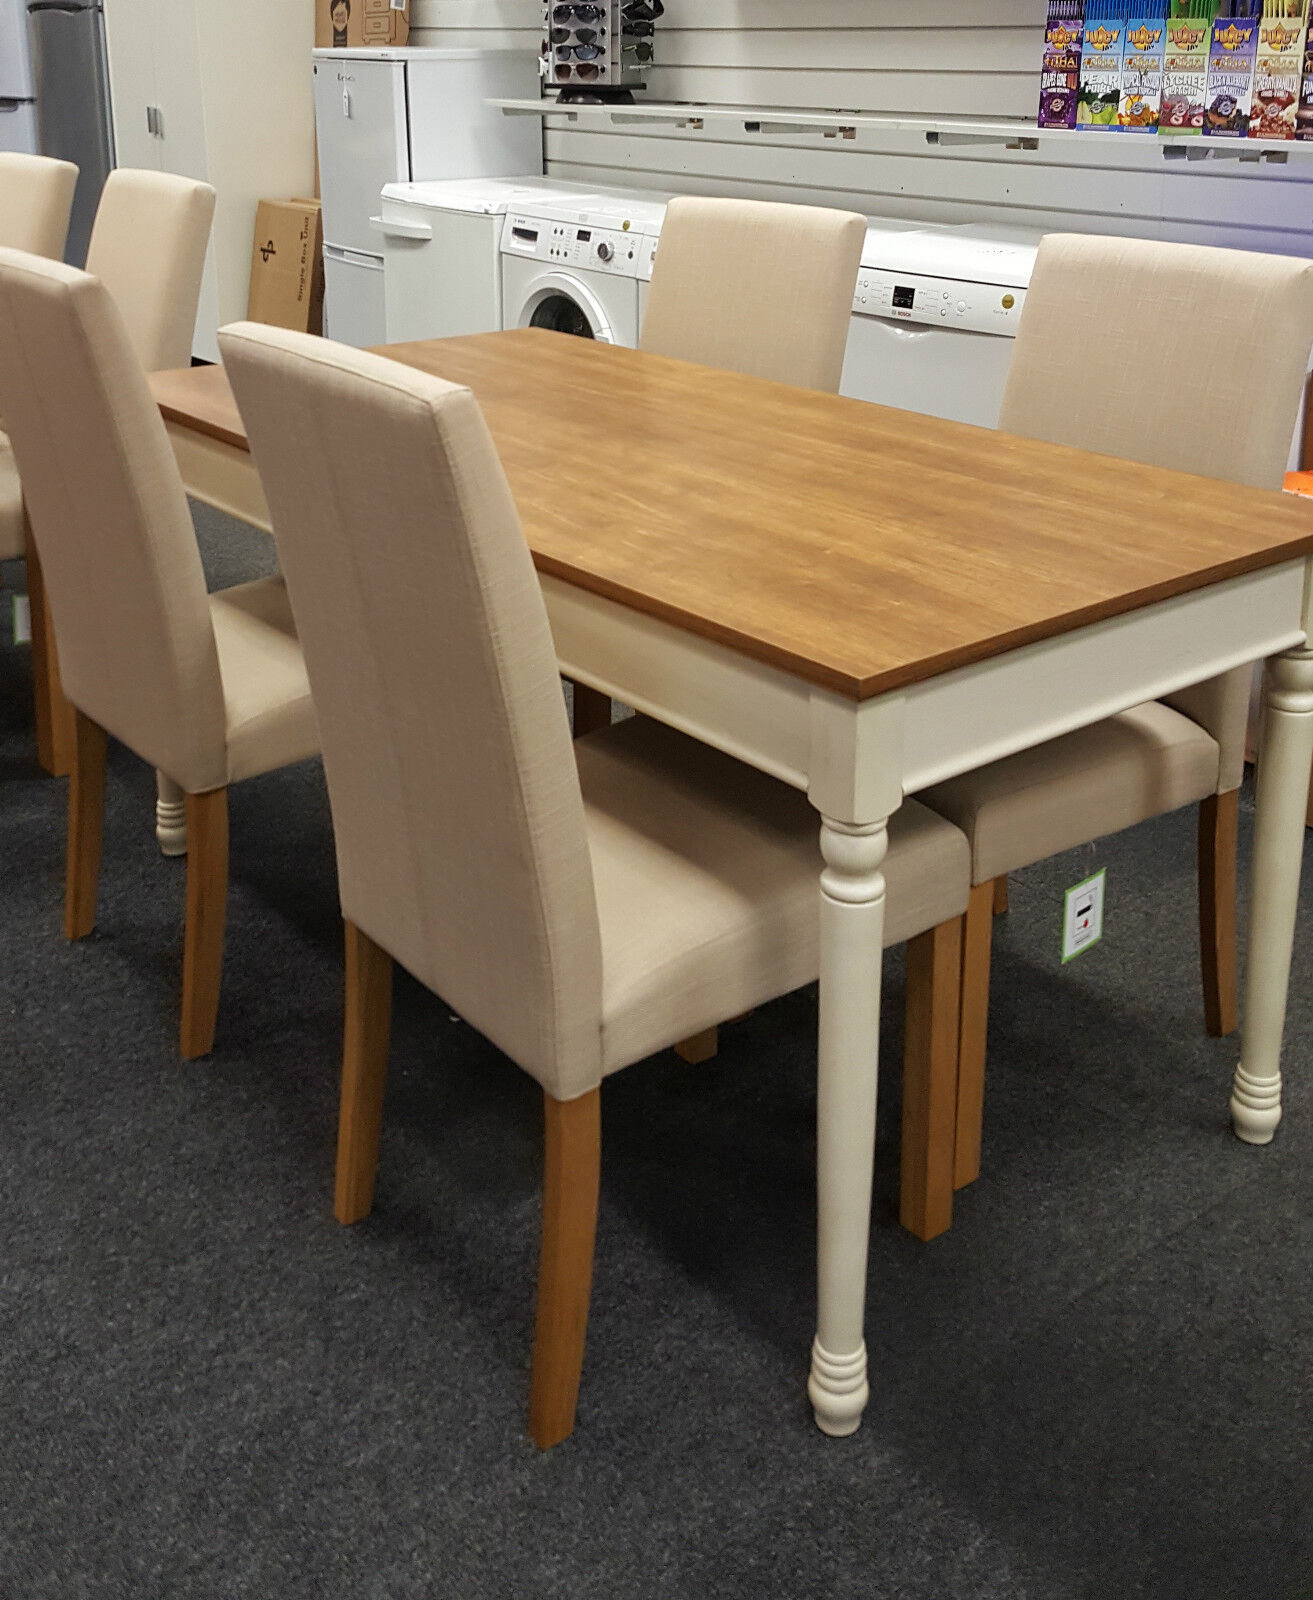 Get Free High Quality HD Wallpapers Homebase Ellingham Dining Table And Chairs